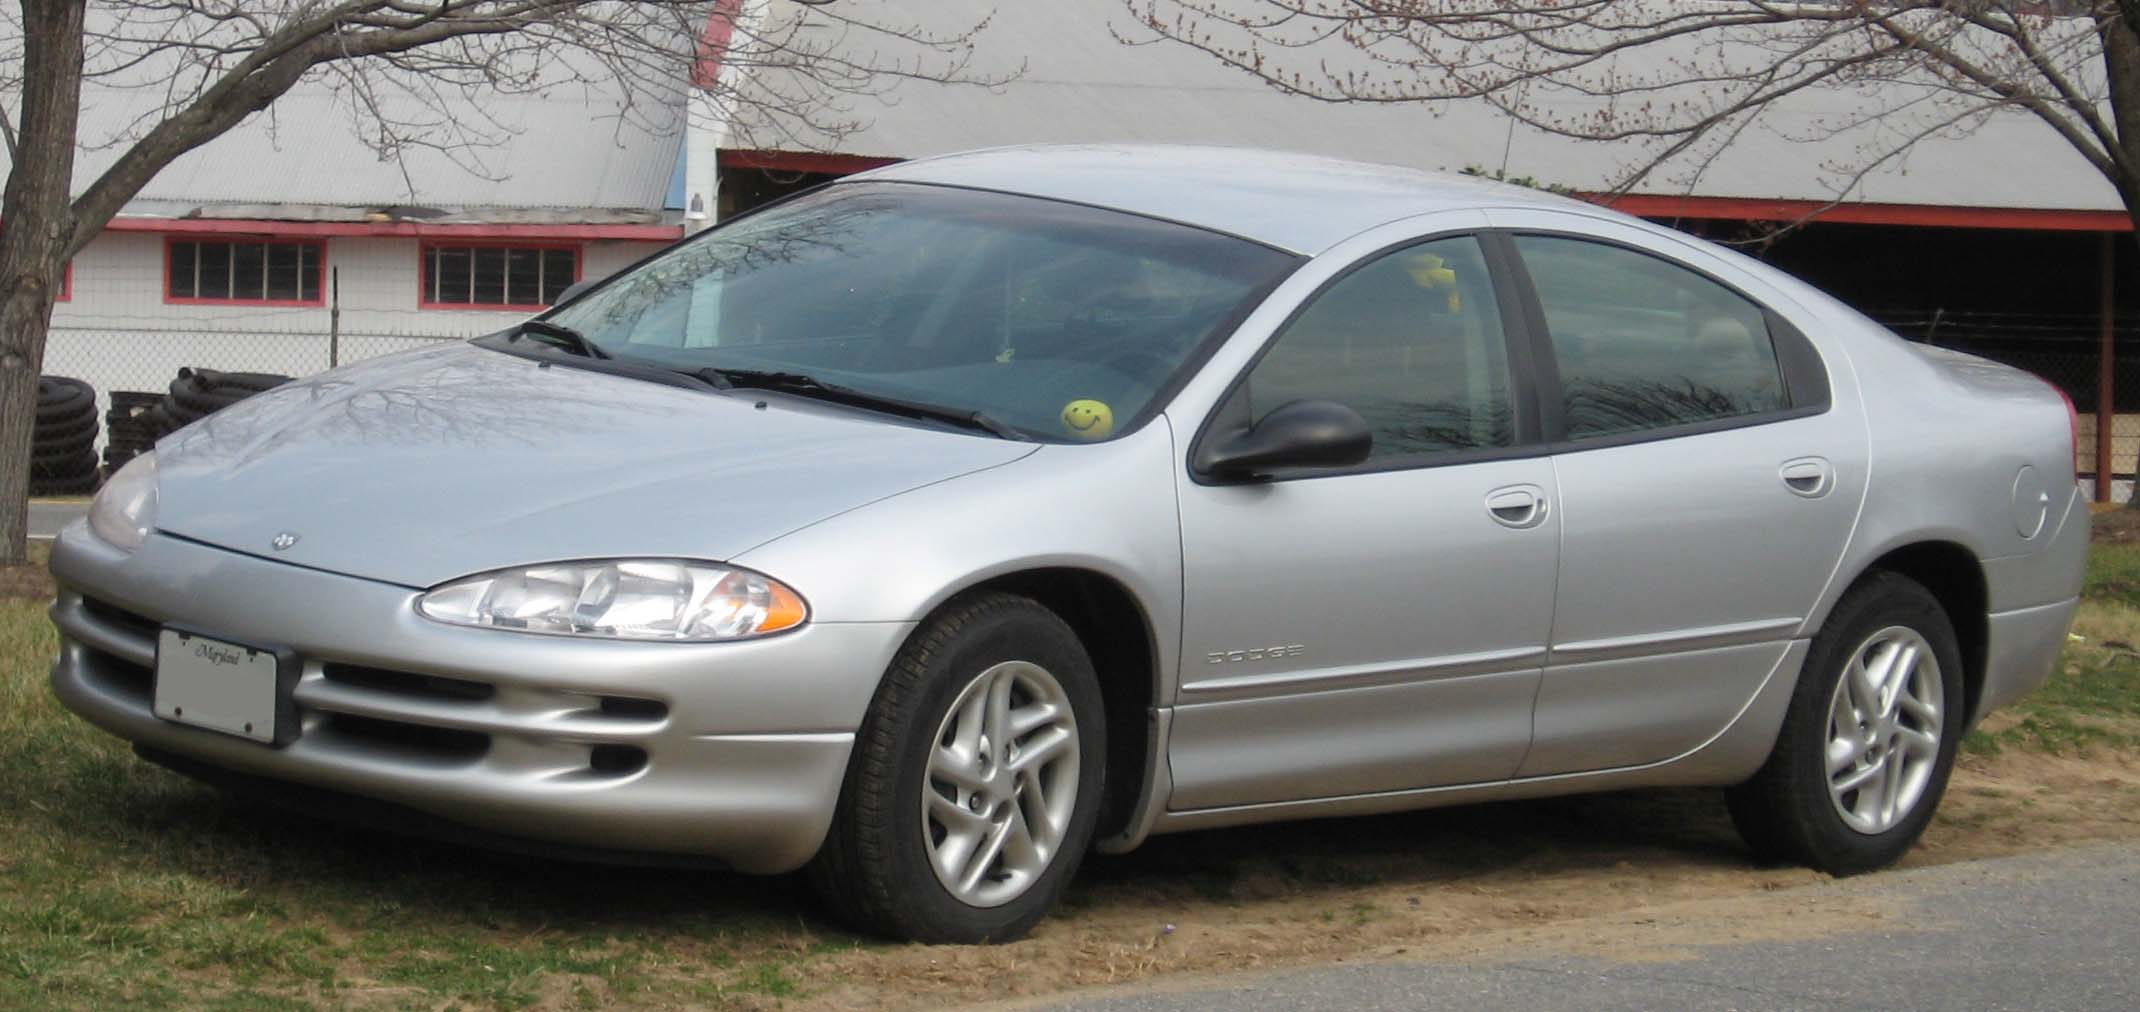 2000 Dodge Intrepid #1